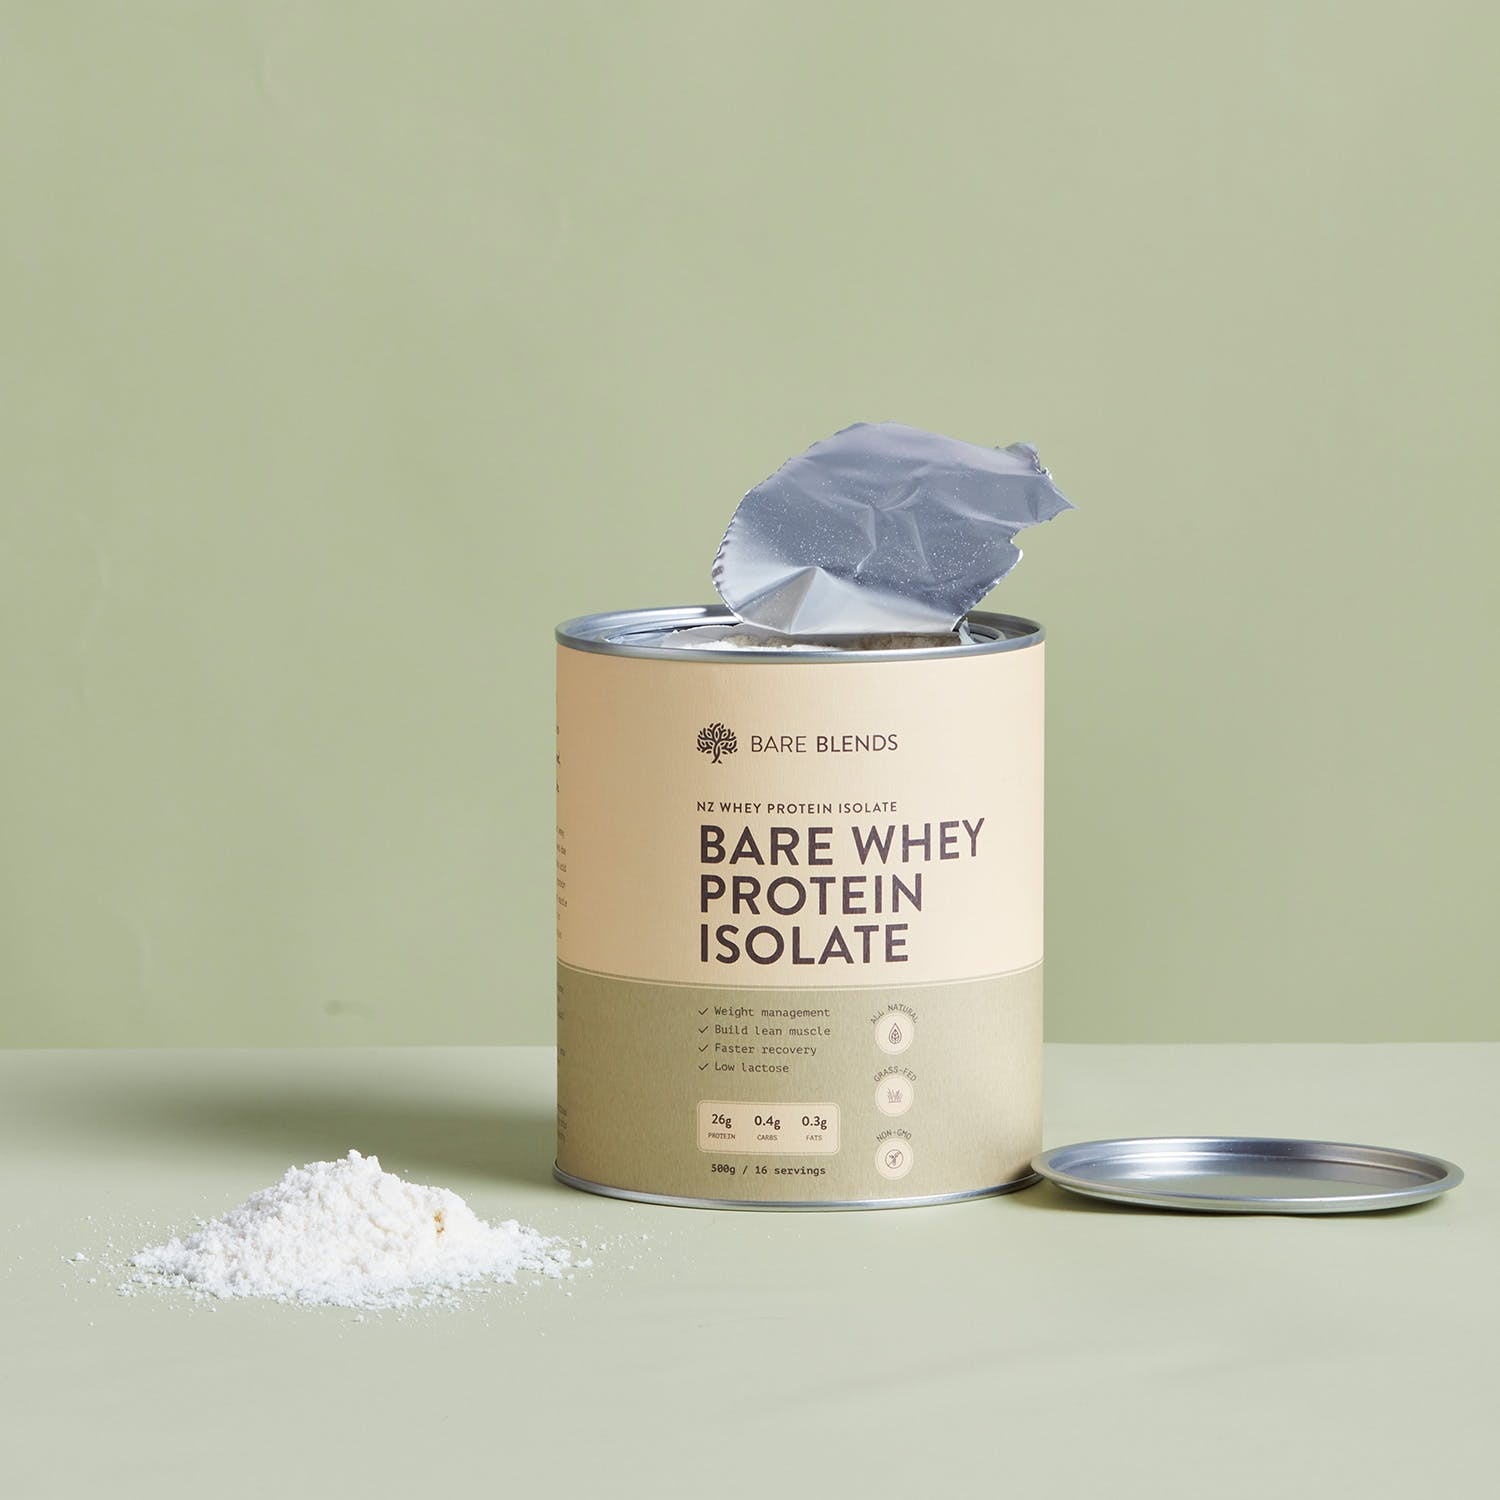 bare whey protein isolate can